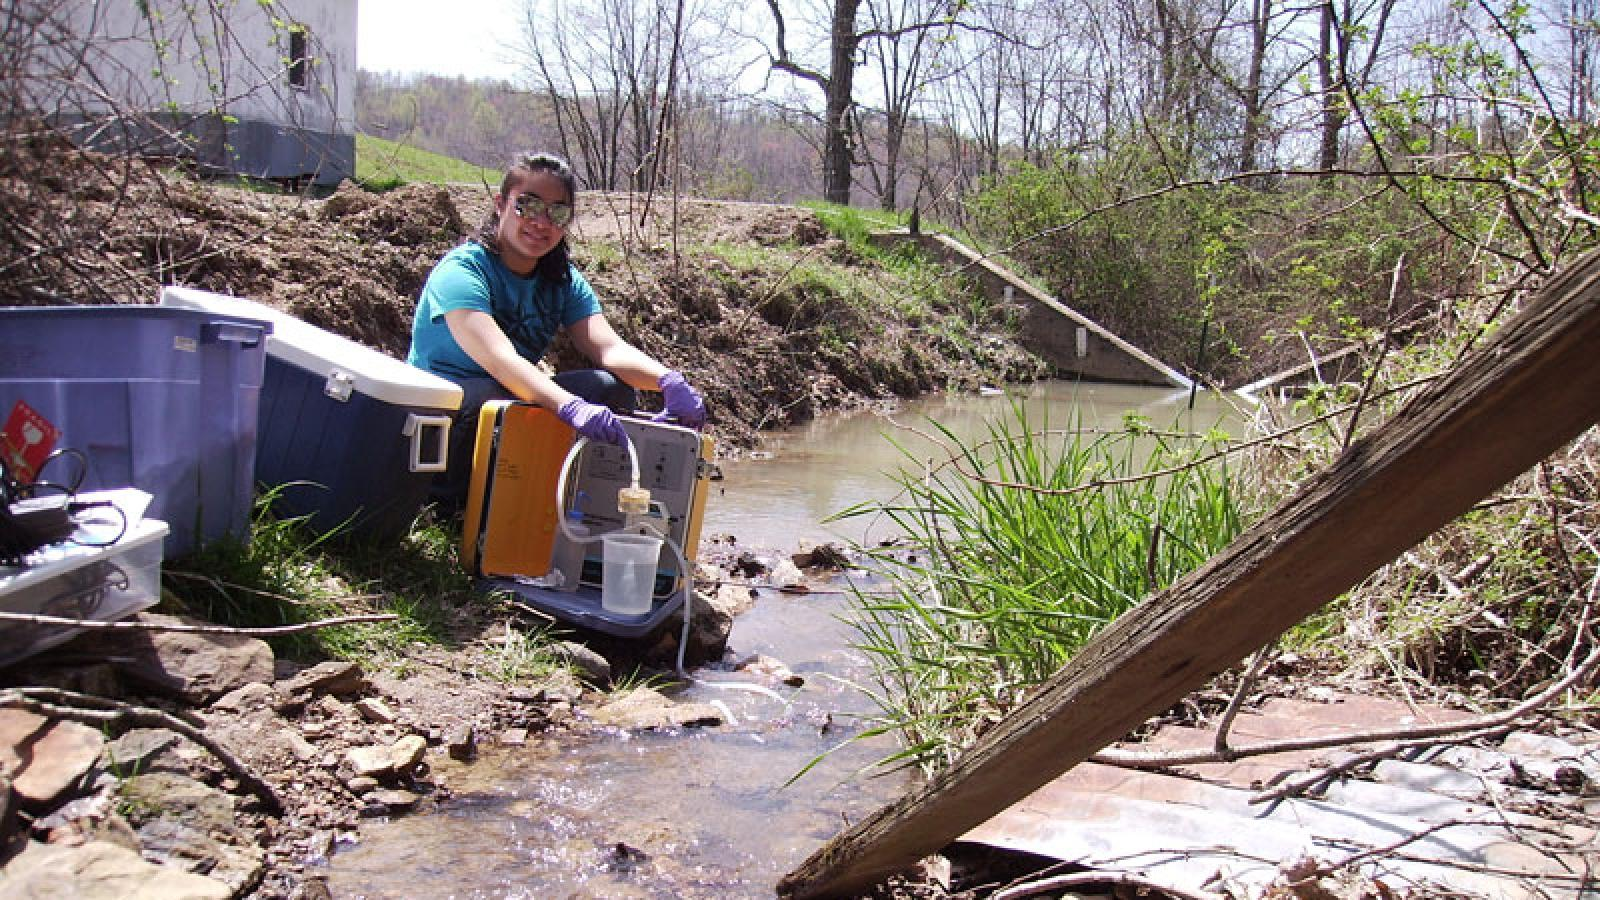 Student Teresa Huey water sampling in Cochocton, Ohio